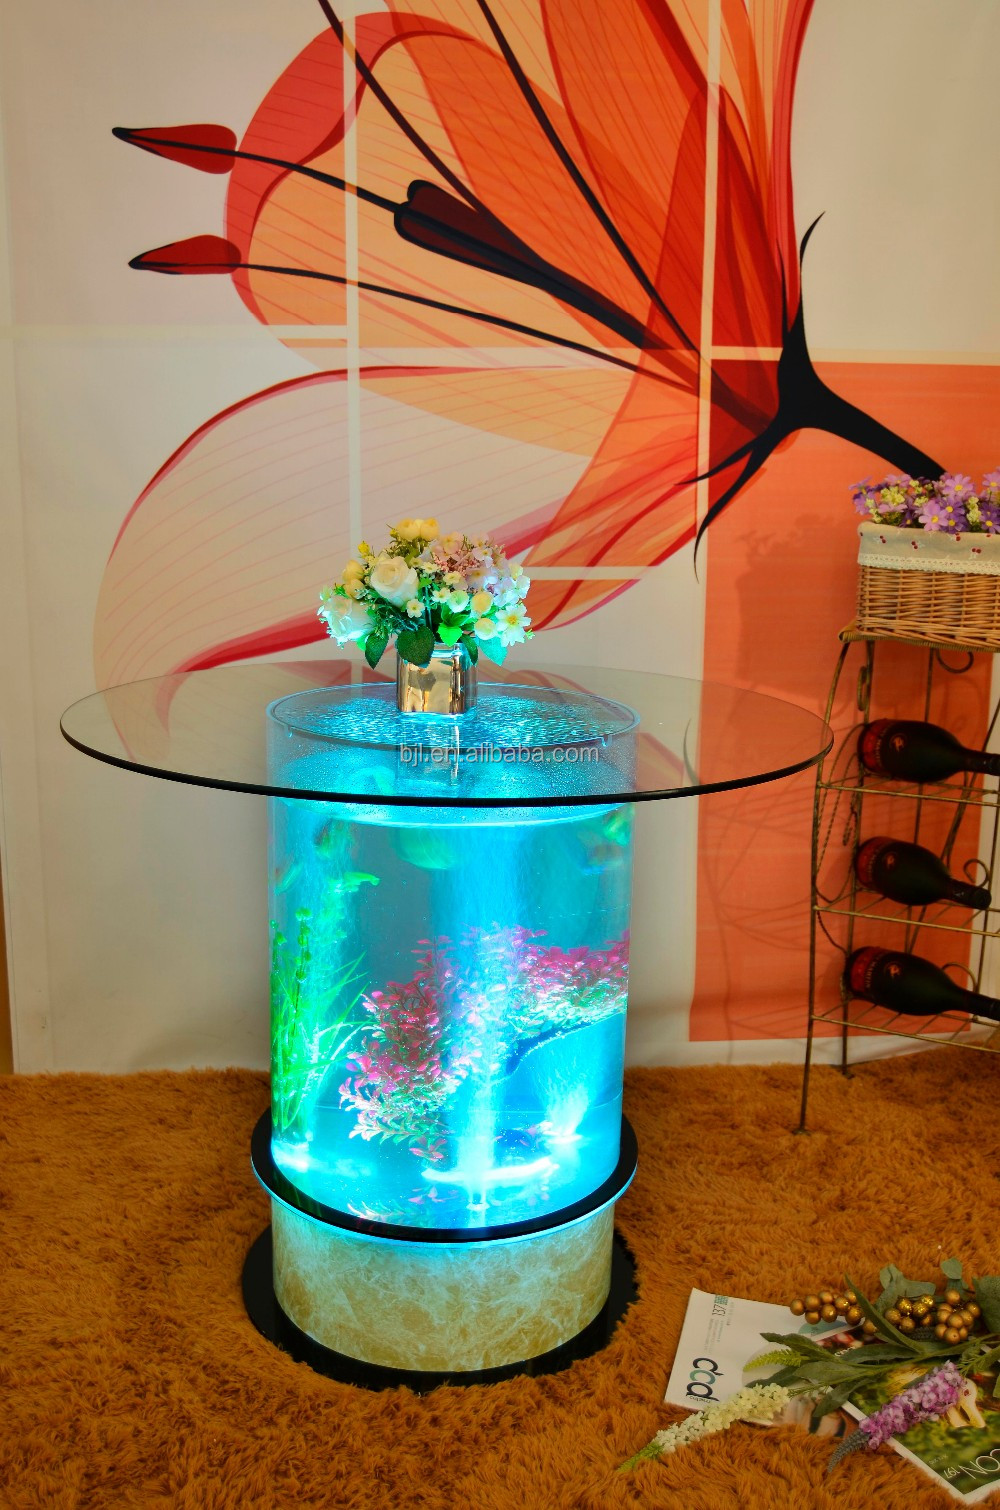 Led Acrylic Light Table Water Bubble Decor Round Coffee Table Fish ...